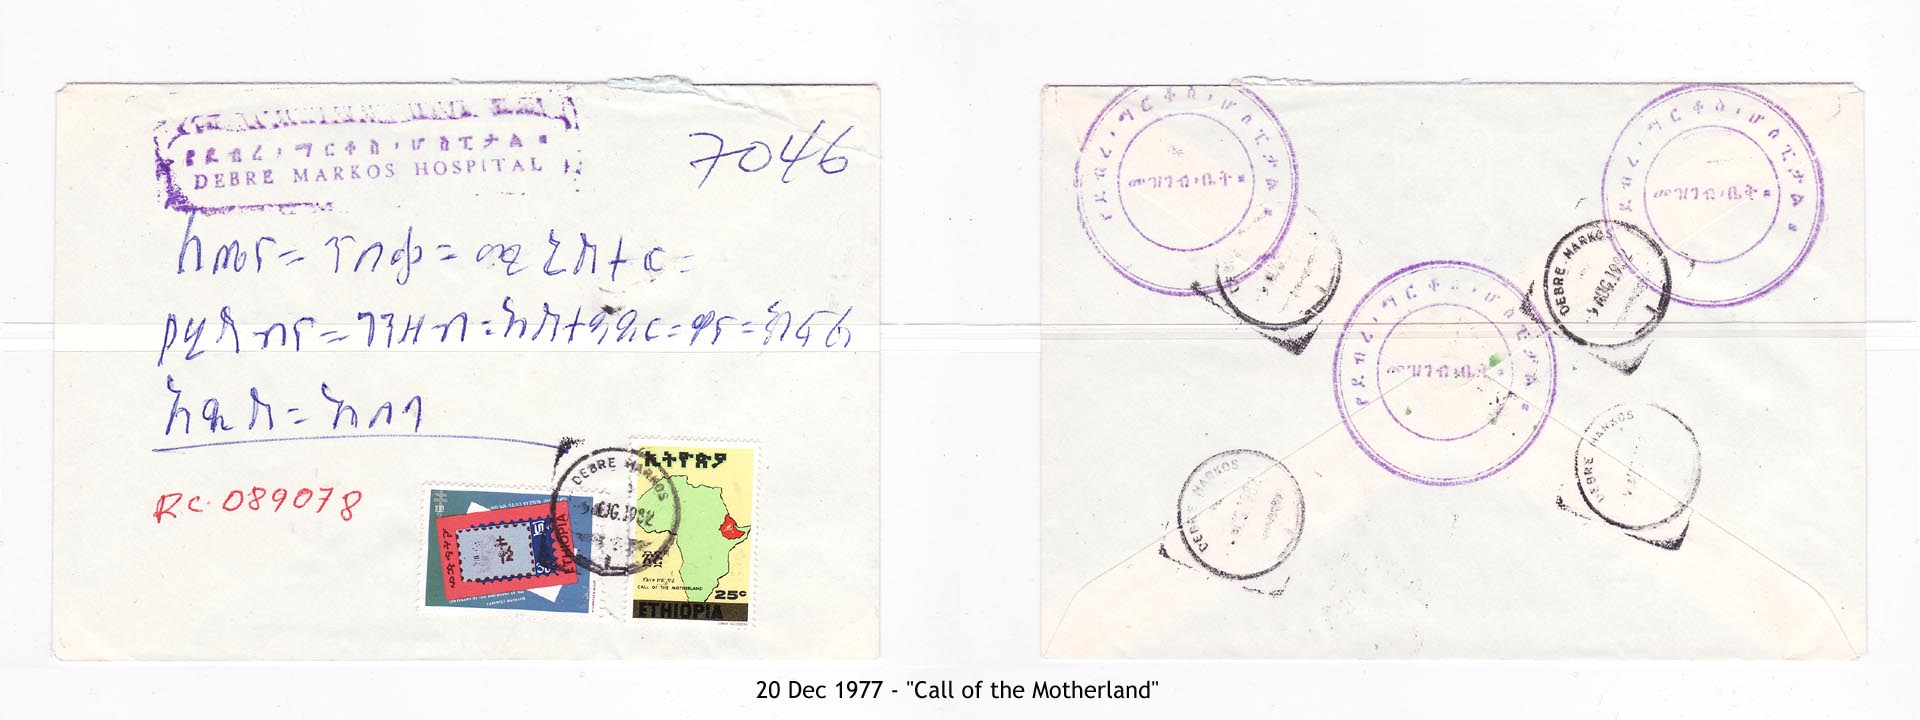 19771220 - Call of the Motherland